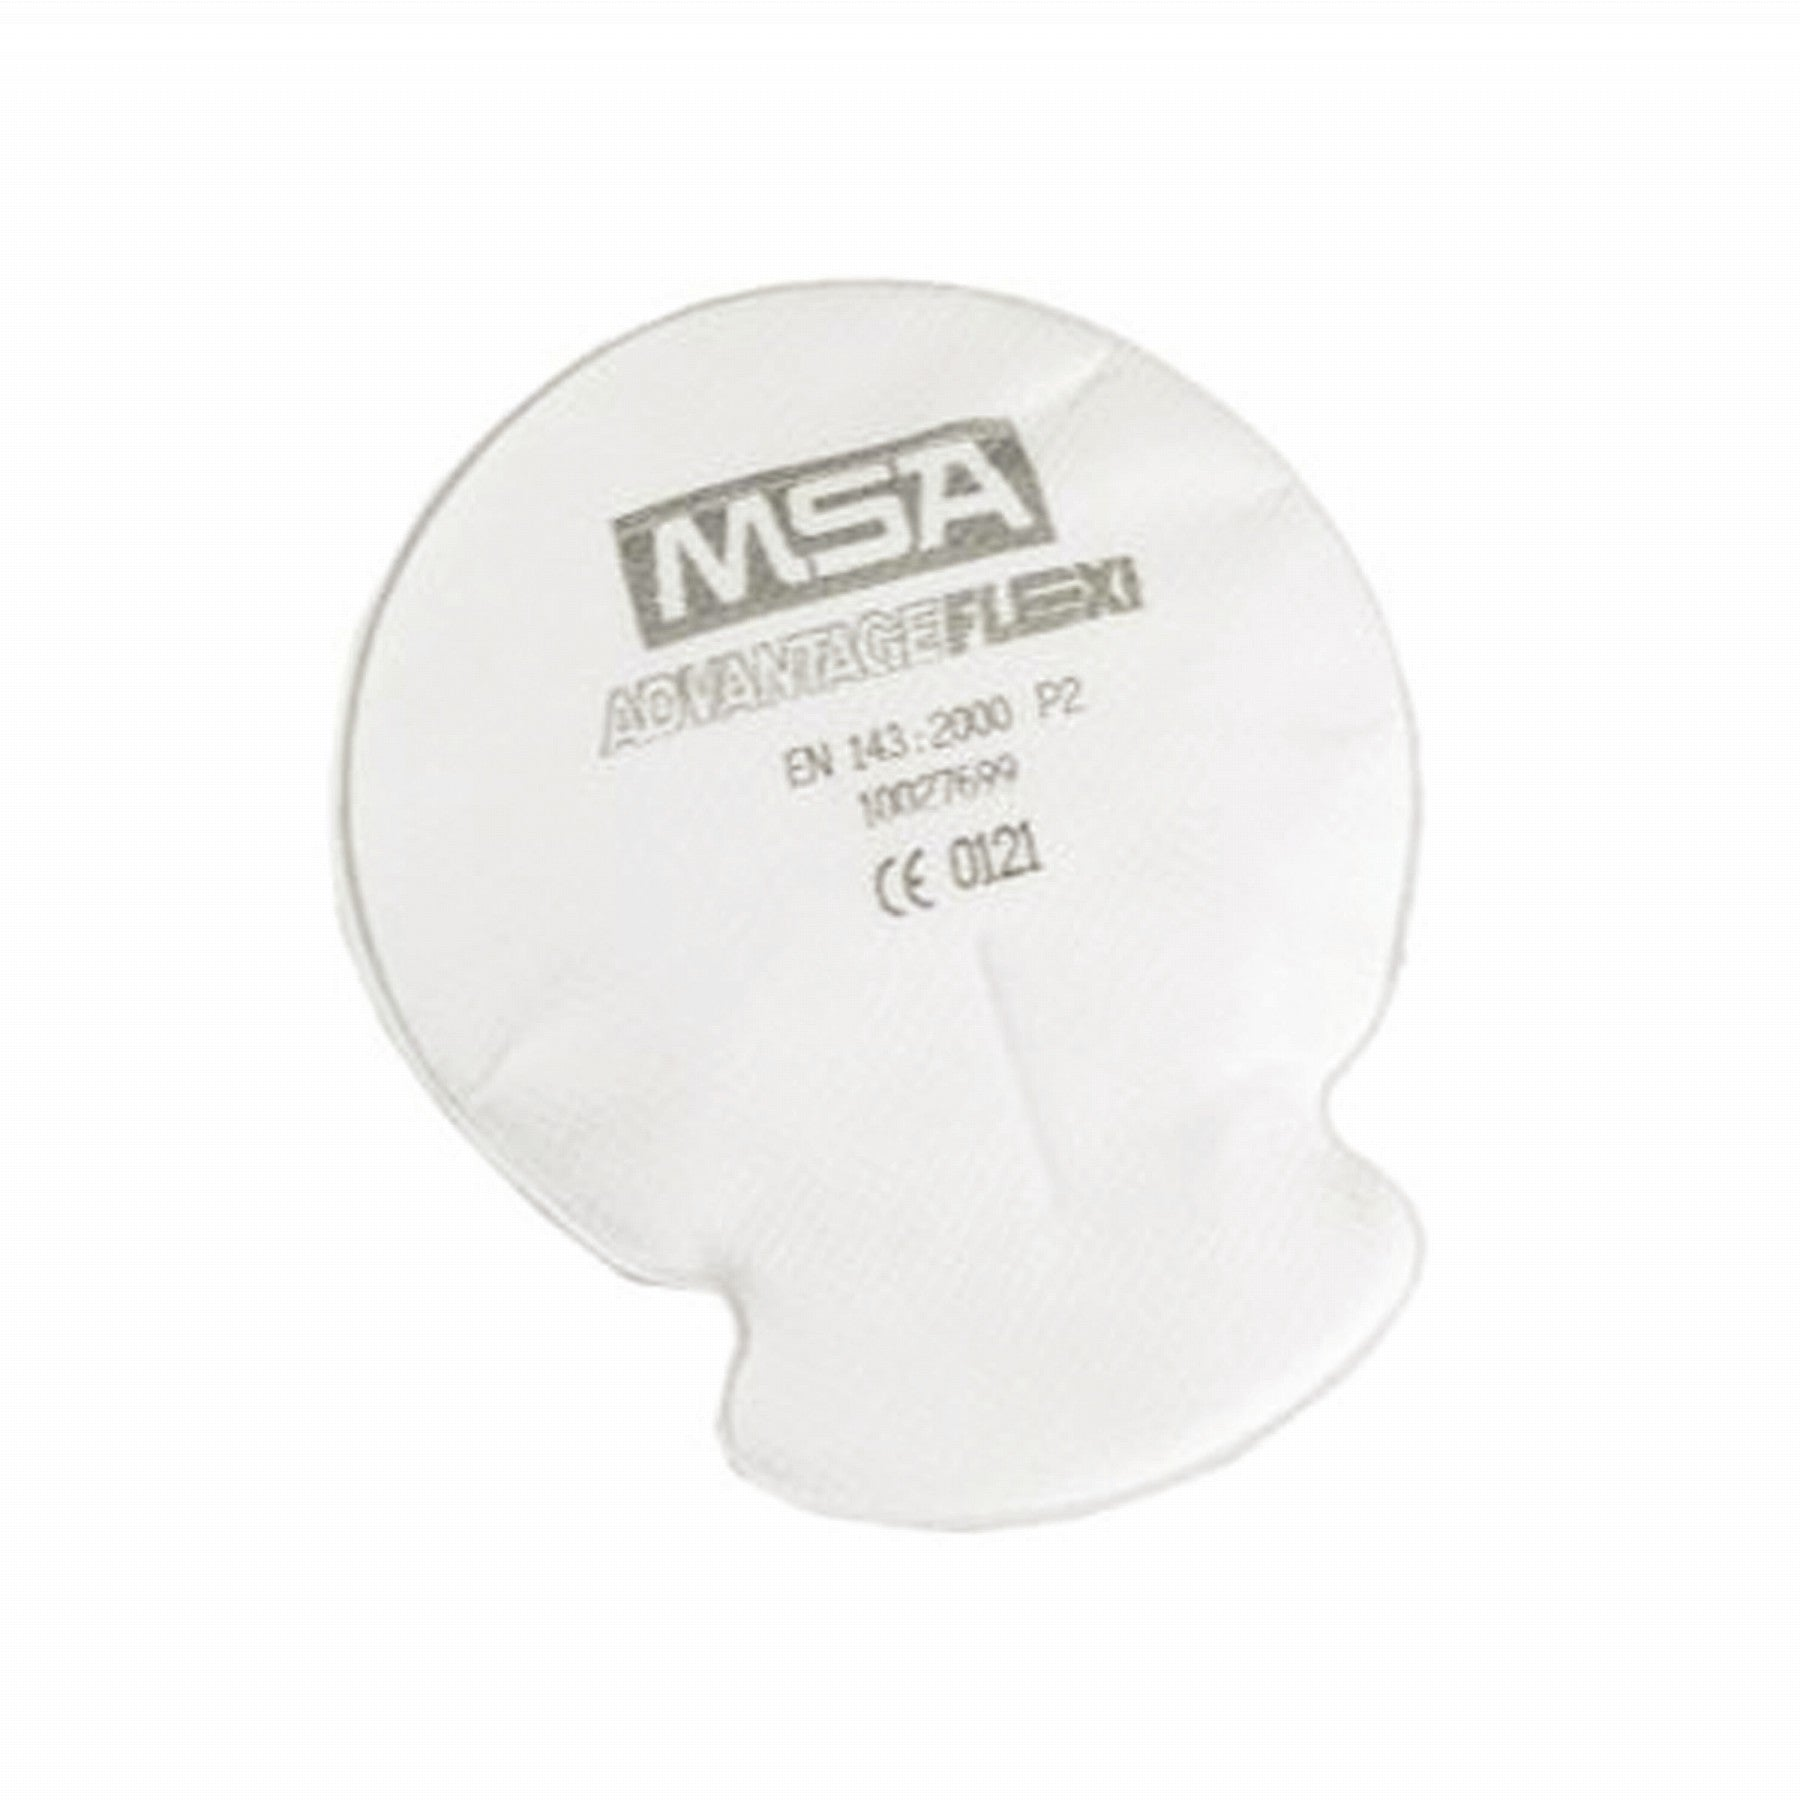 MSA FILTER FLEXI P3 (10 Pack)